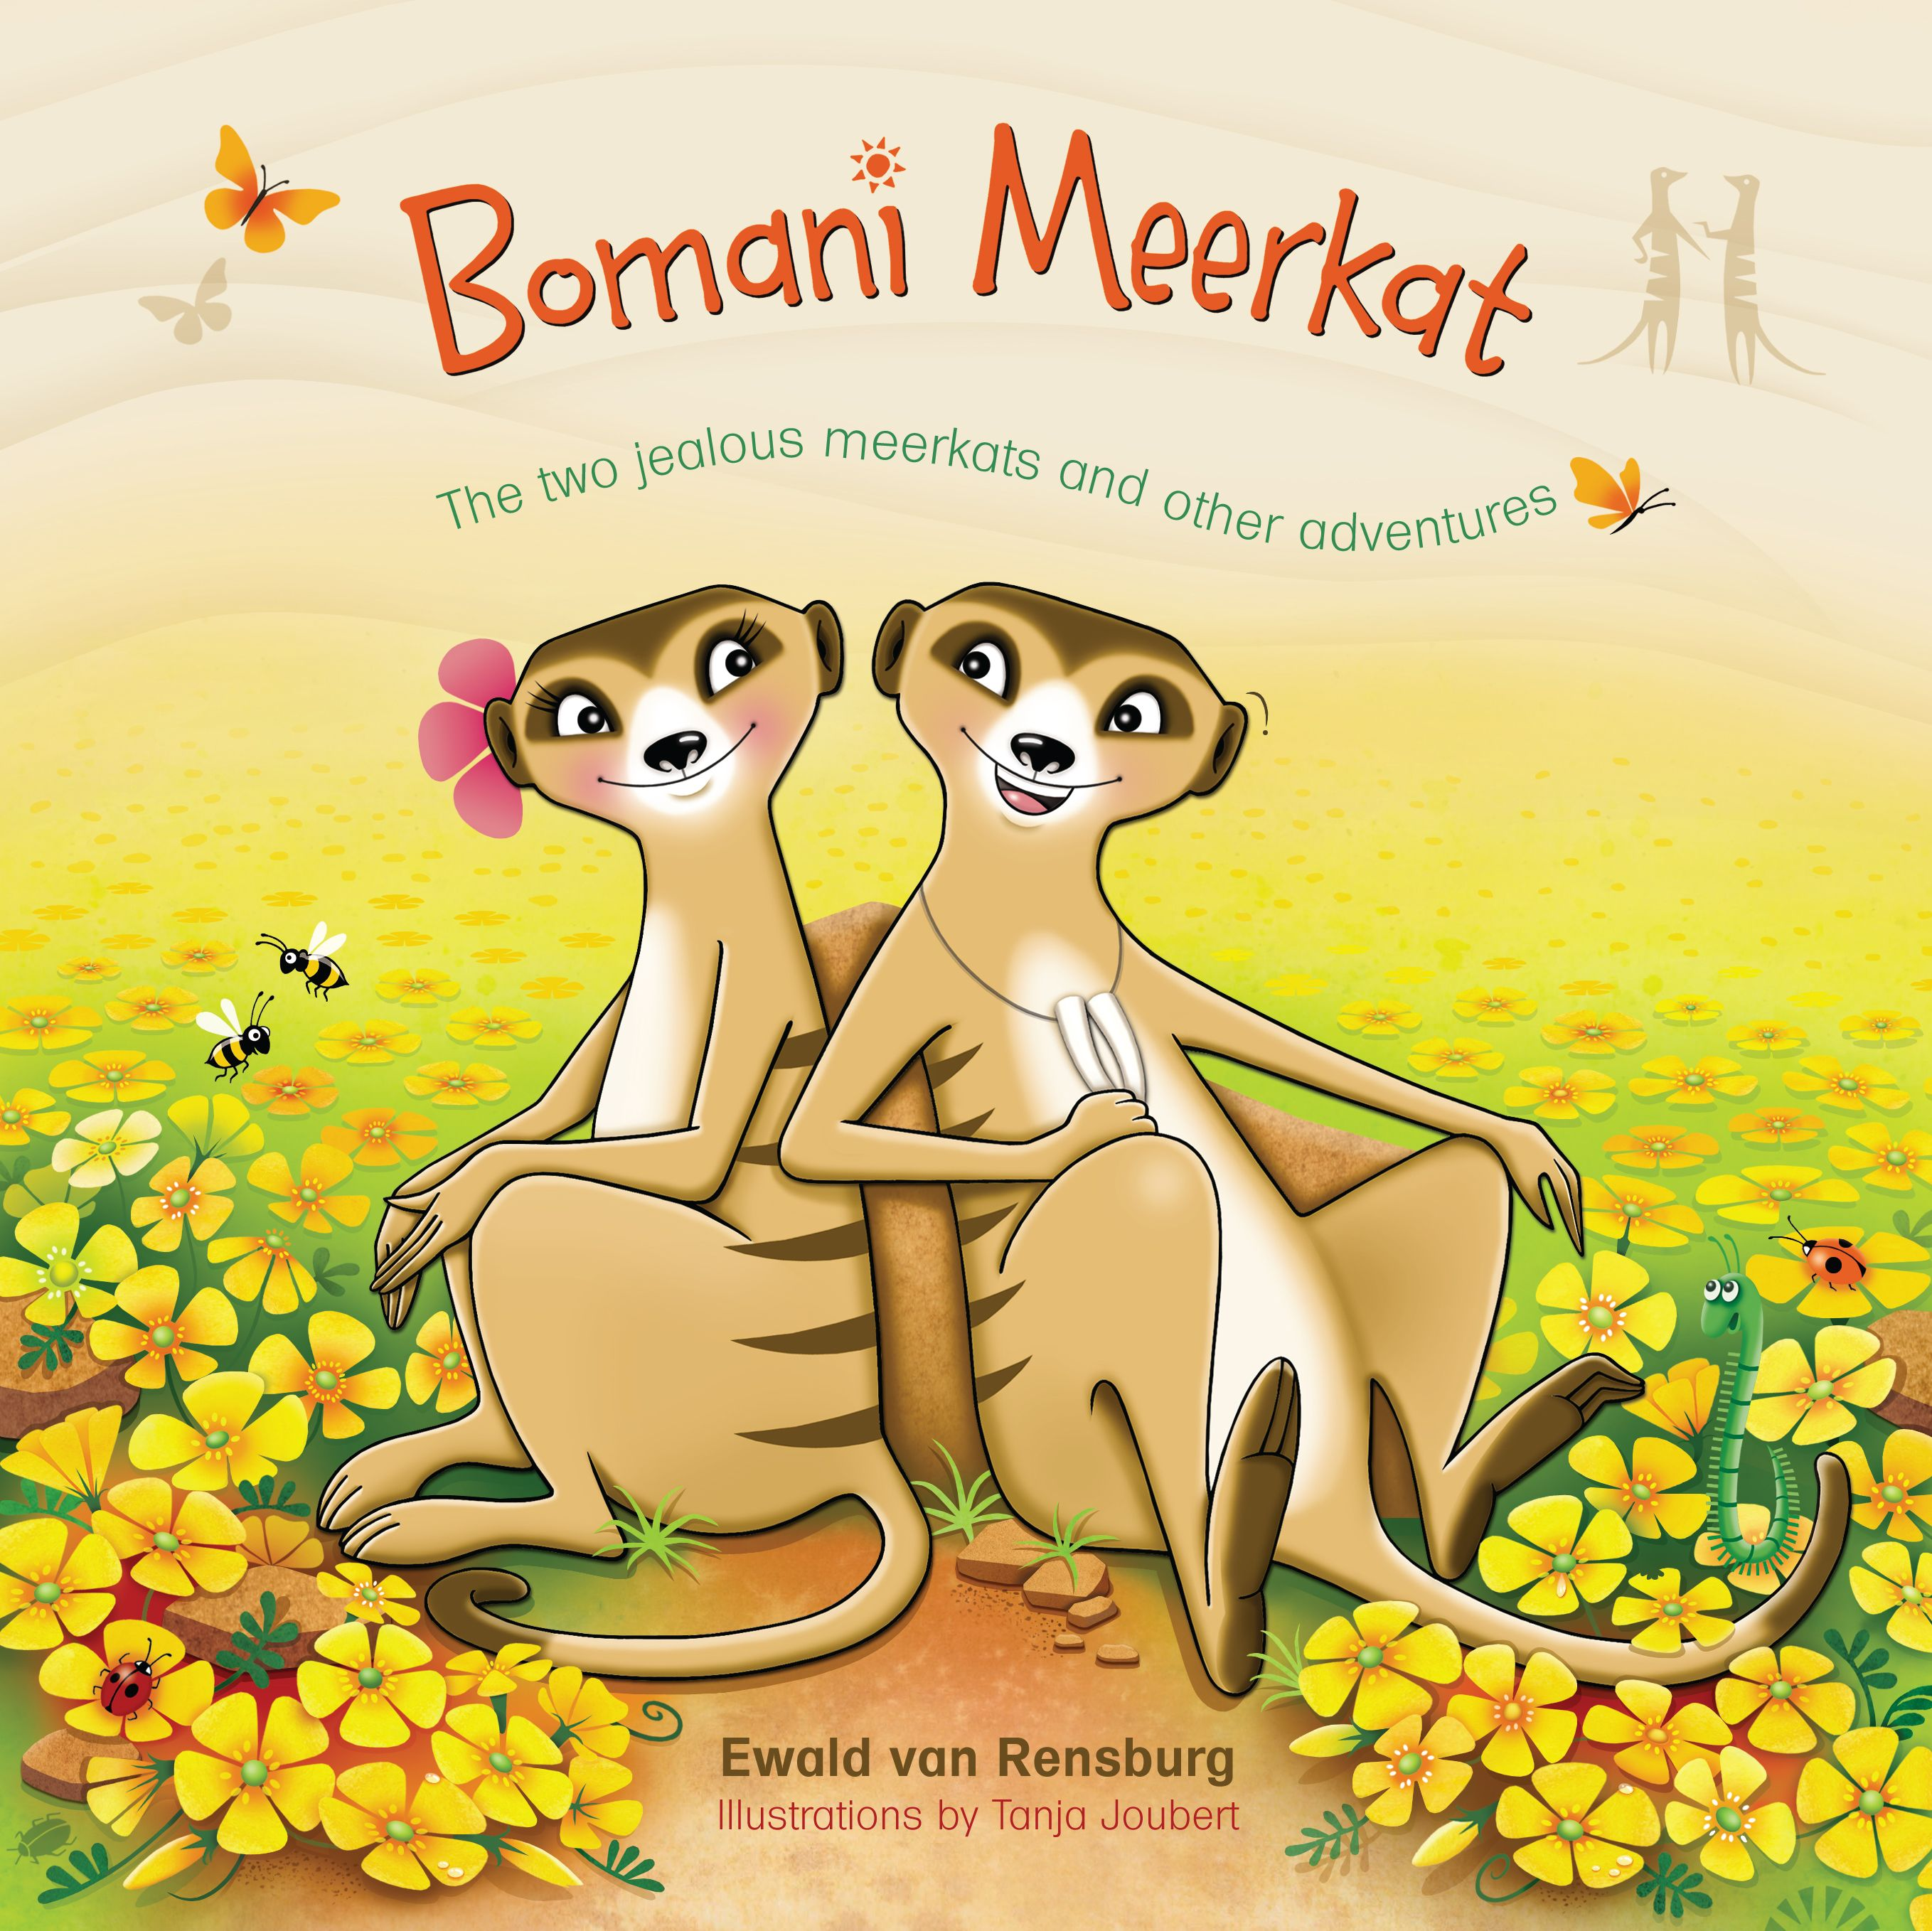 Bomani Meerkat: The two jealous meerkats and other adventures. Author: Ewald van Rensburg Illustrator: Tanja Joubert.